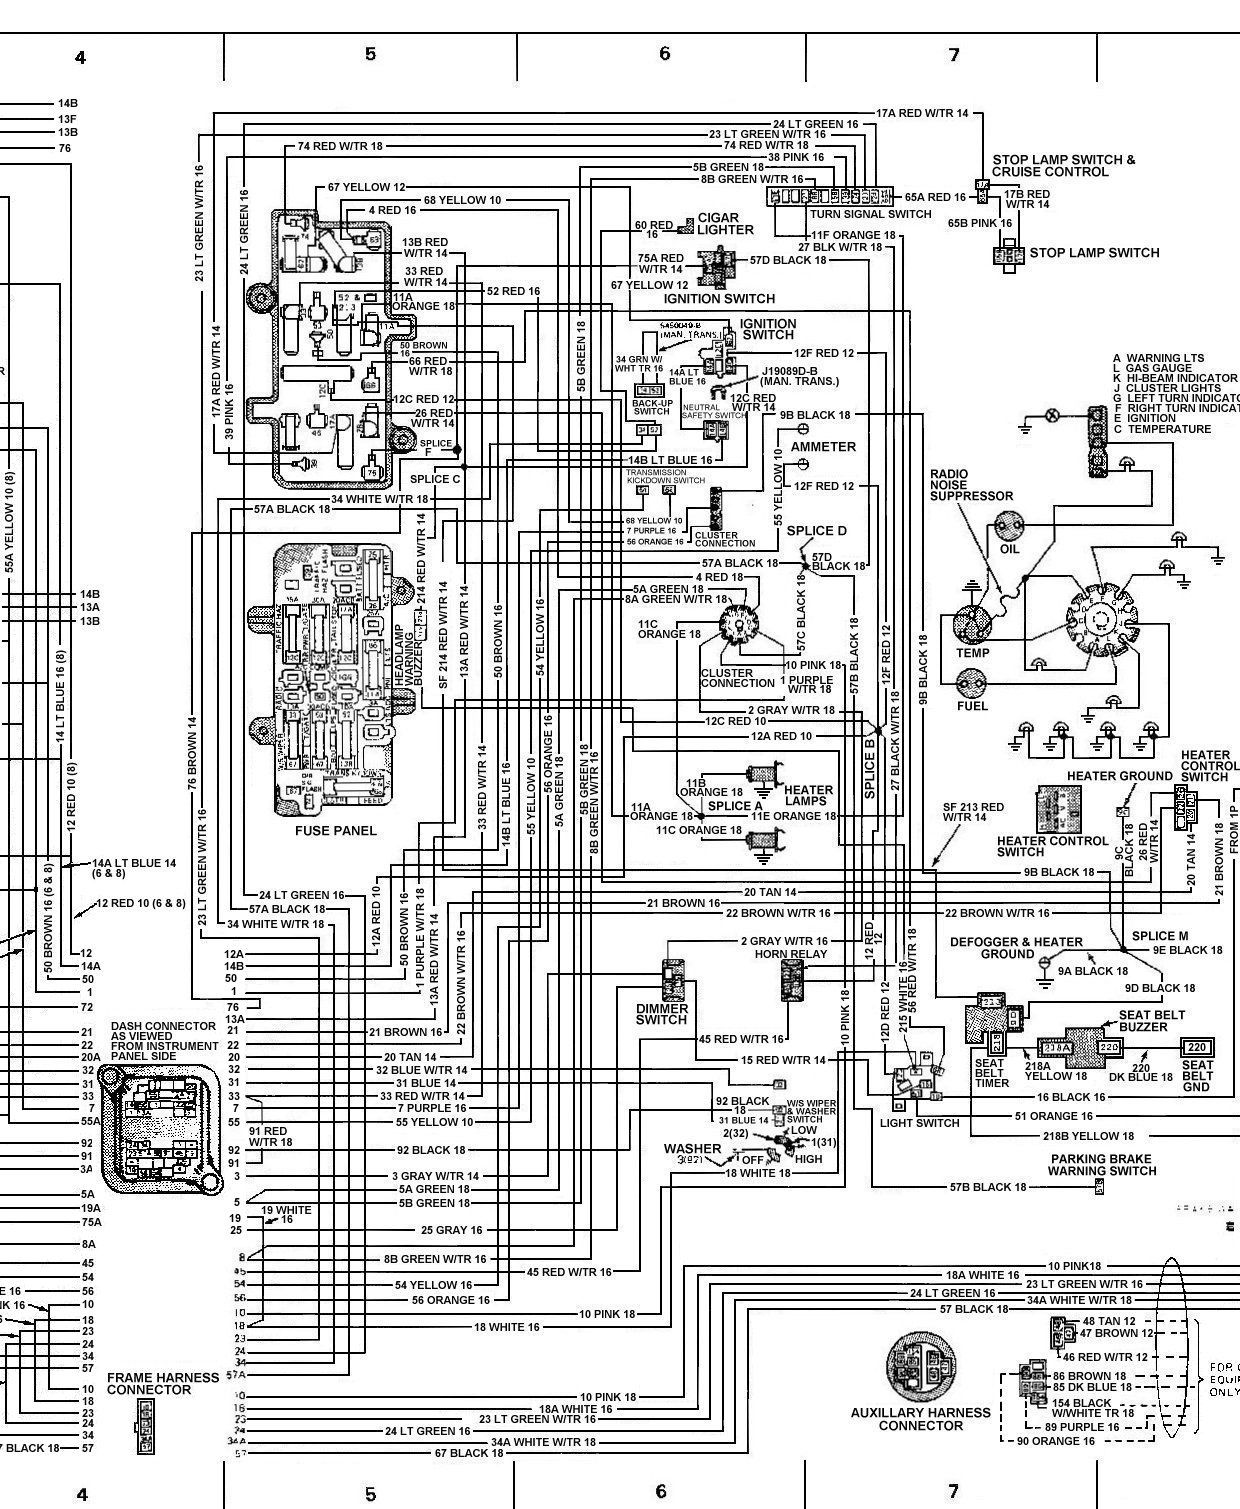 pin by angel car on 2017 cars reviews | 2004 nissan ... 2006 kia sportage wiring diagram #14